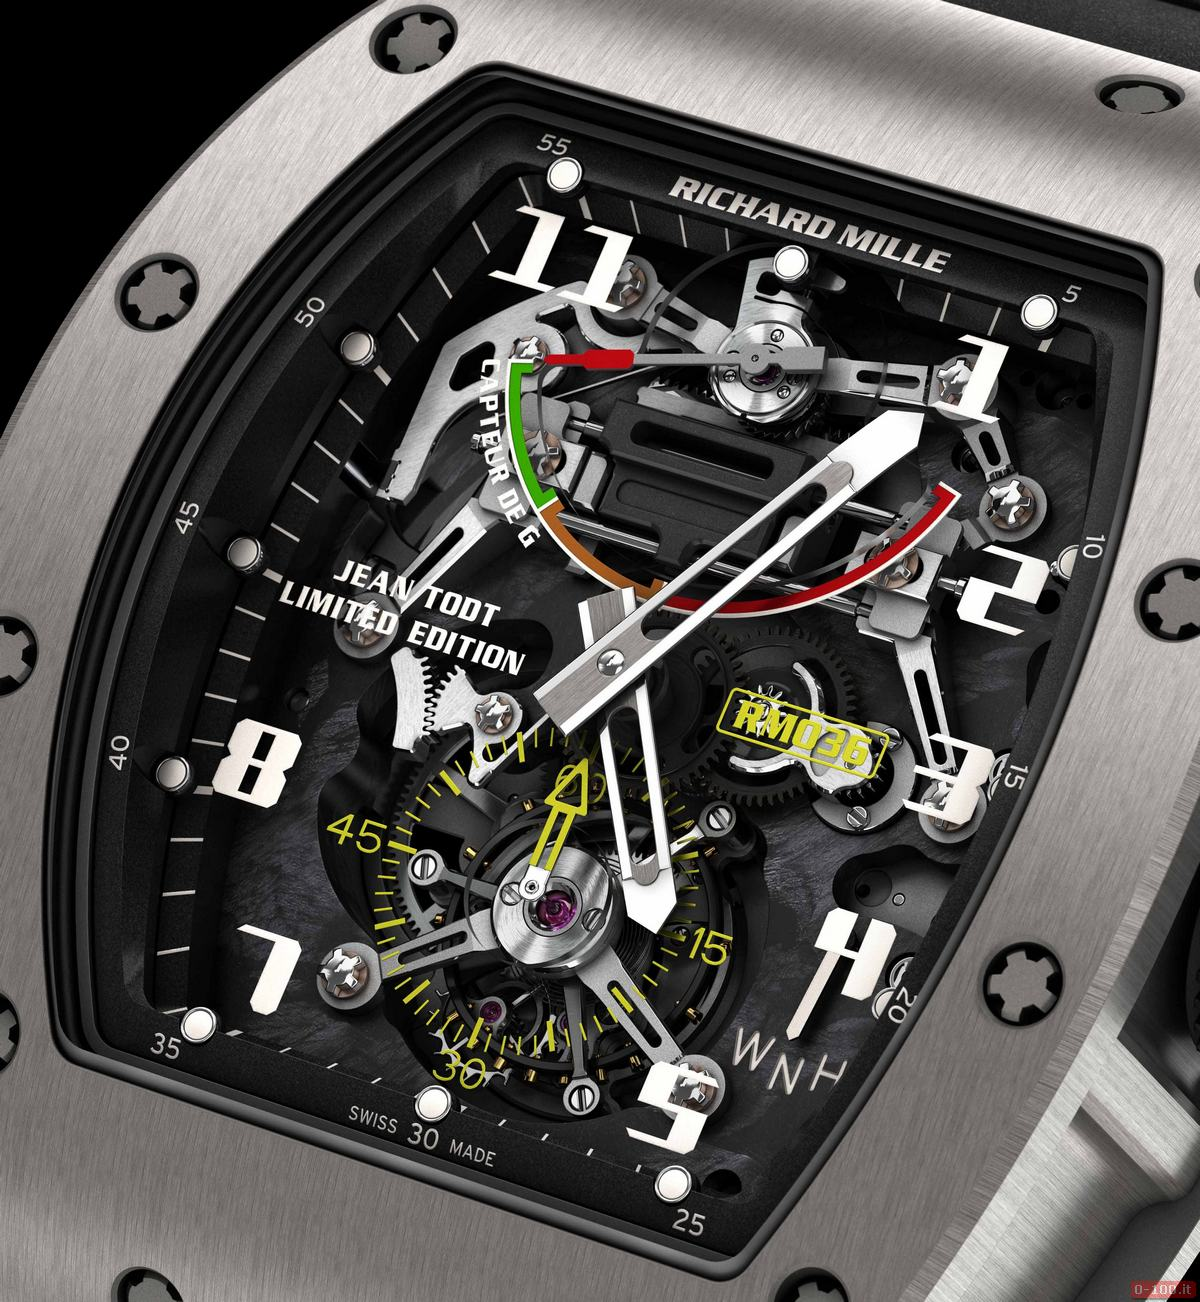 Richard Mille 036 Jean Todt Limited Edition_0-1002